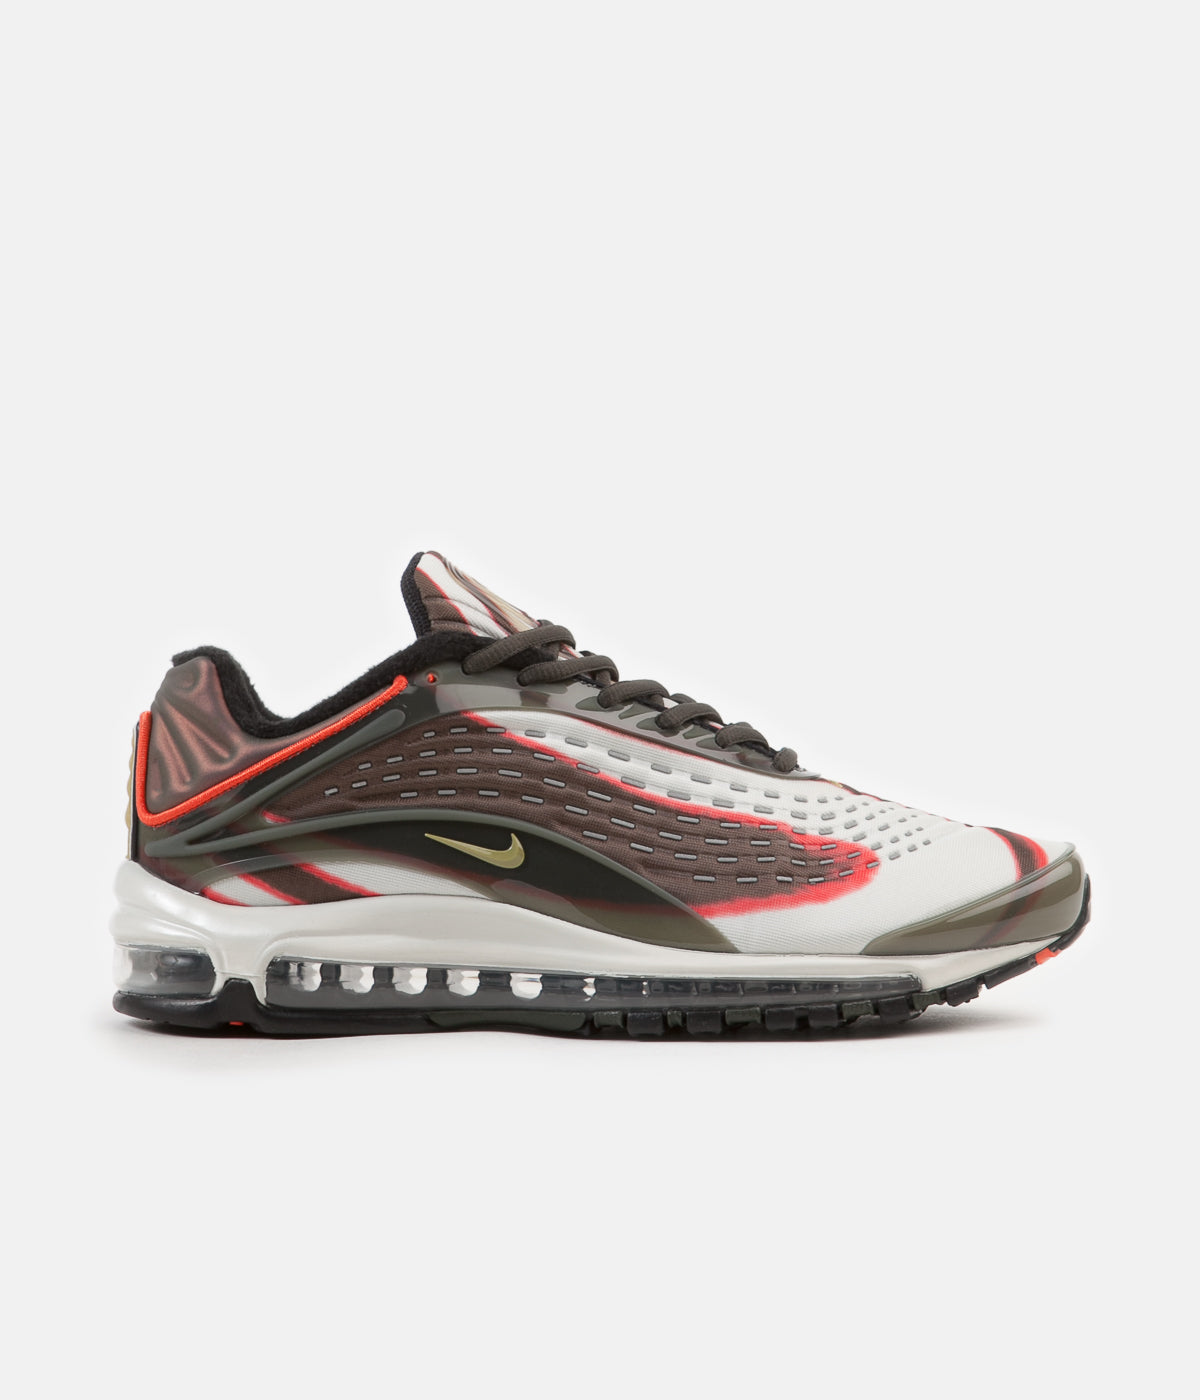 ... Nike Air Max Deluxe Shoes - Sequoia   Camper Green - Team Orange -  Black ... d1bf467baa198